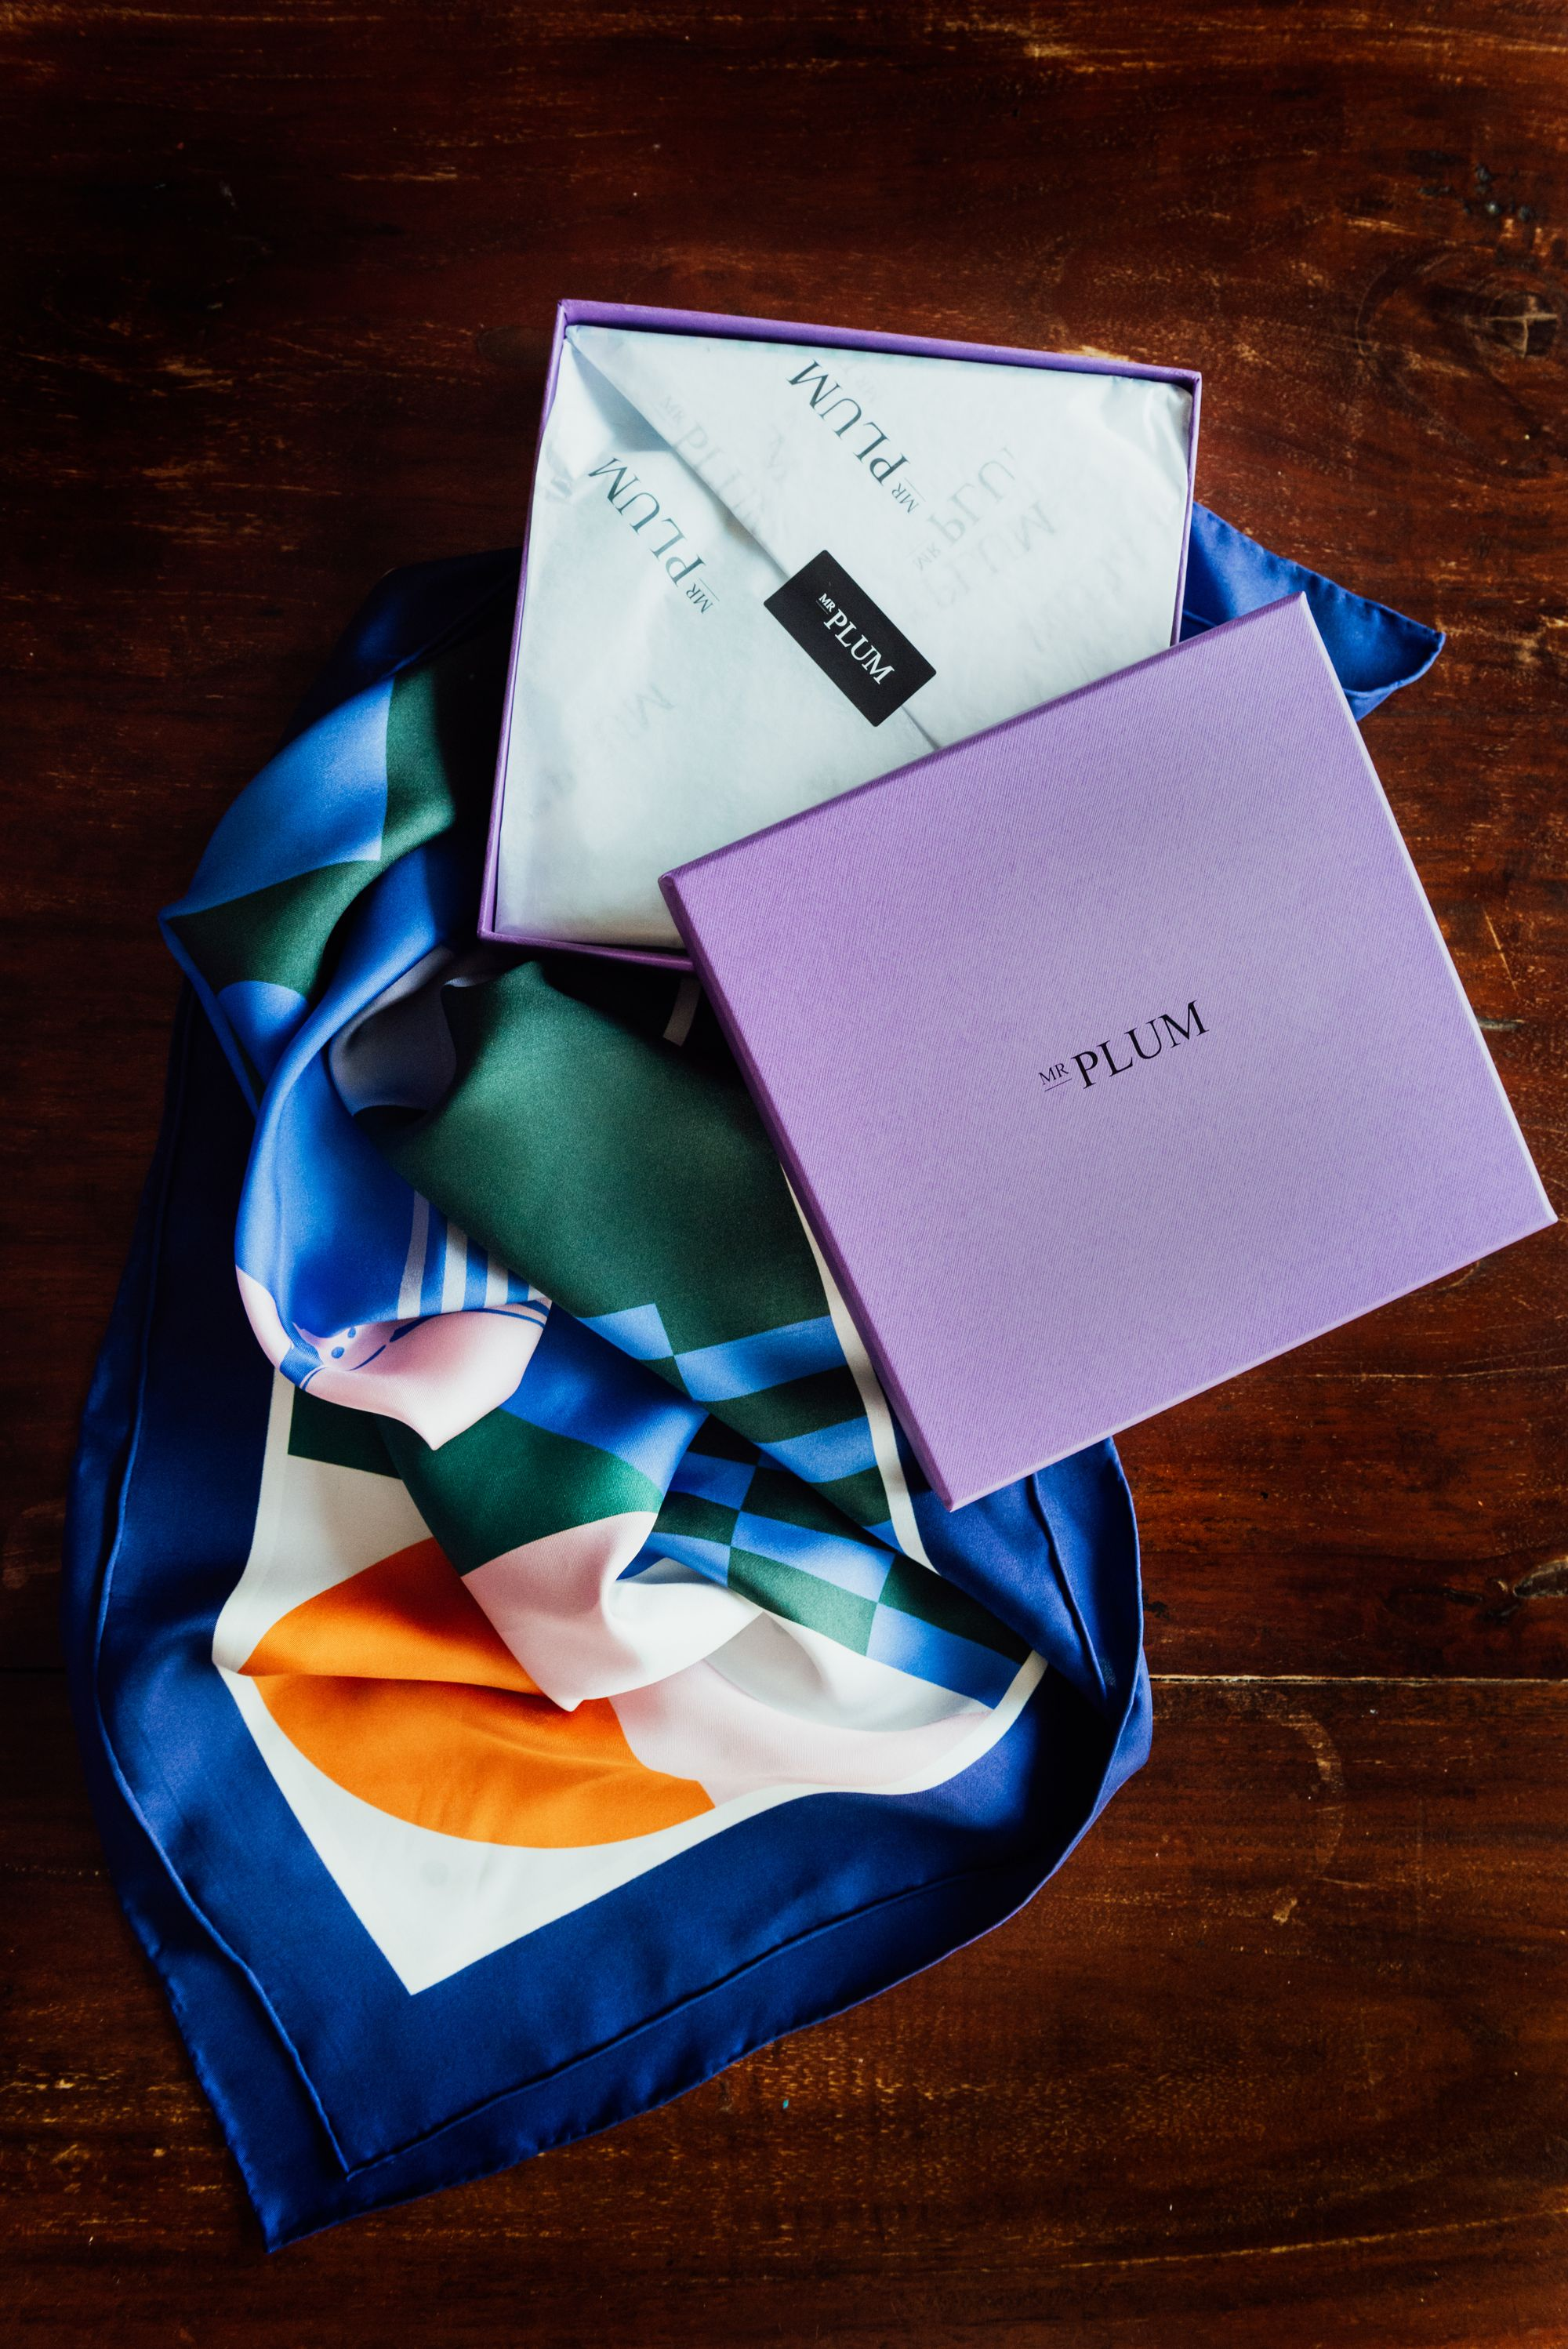 Mr. Plum's Thoughtful Silk Scarves: Wearable Masterpieces